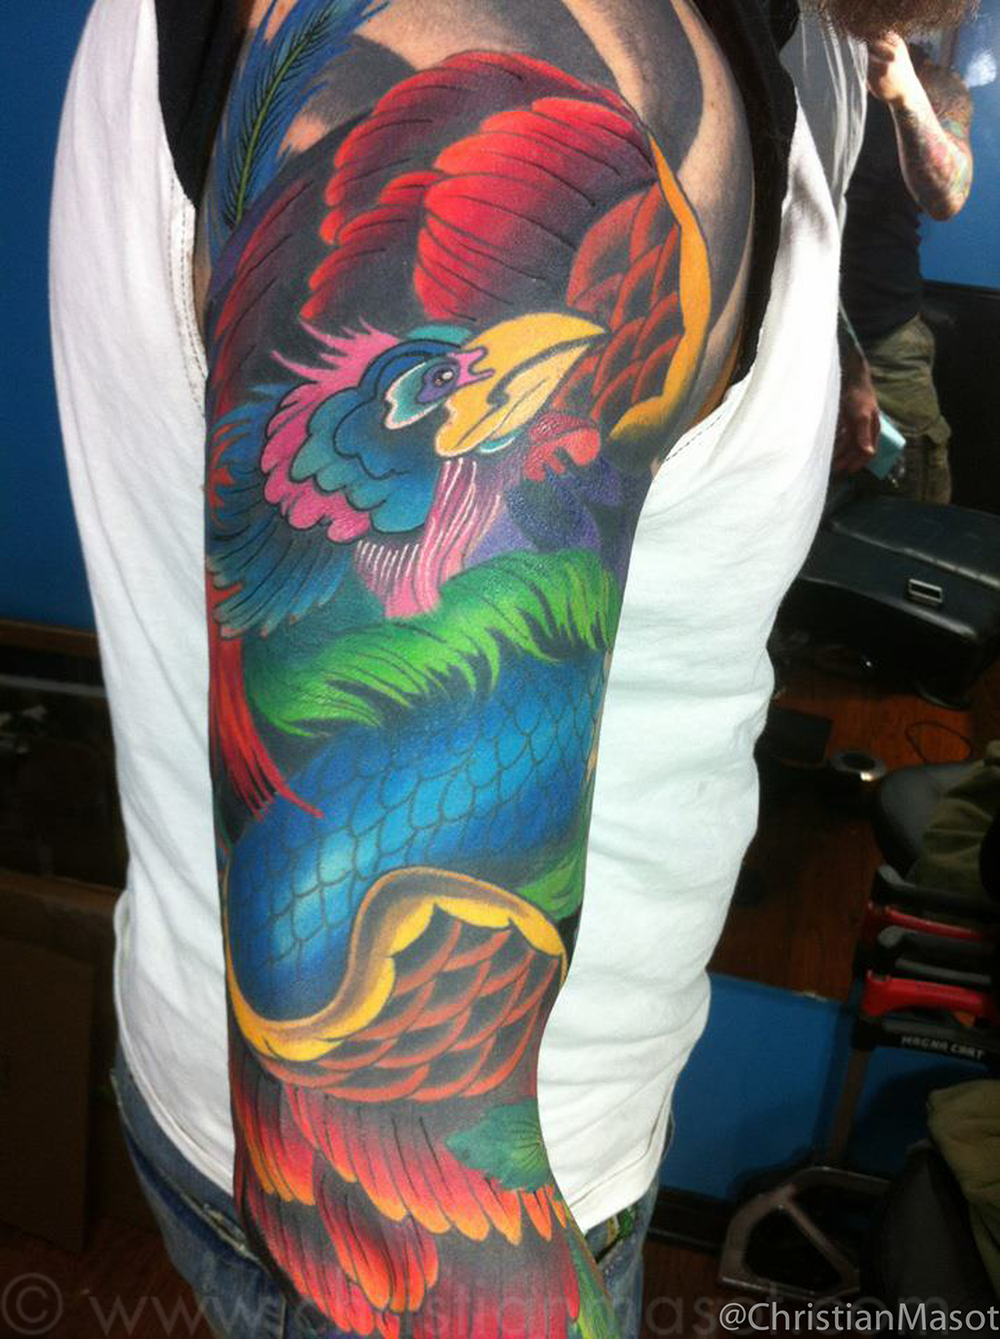 christian_masot_tattoo_13.png